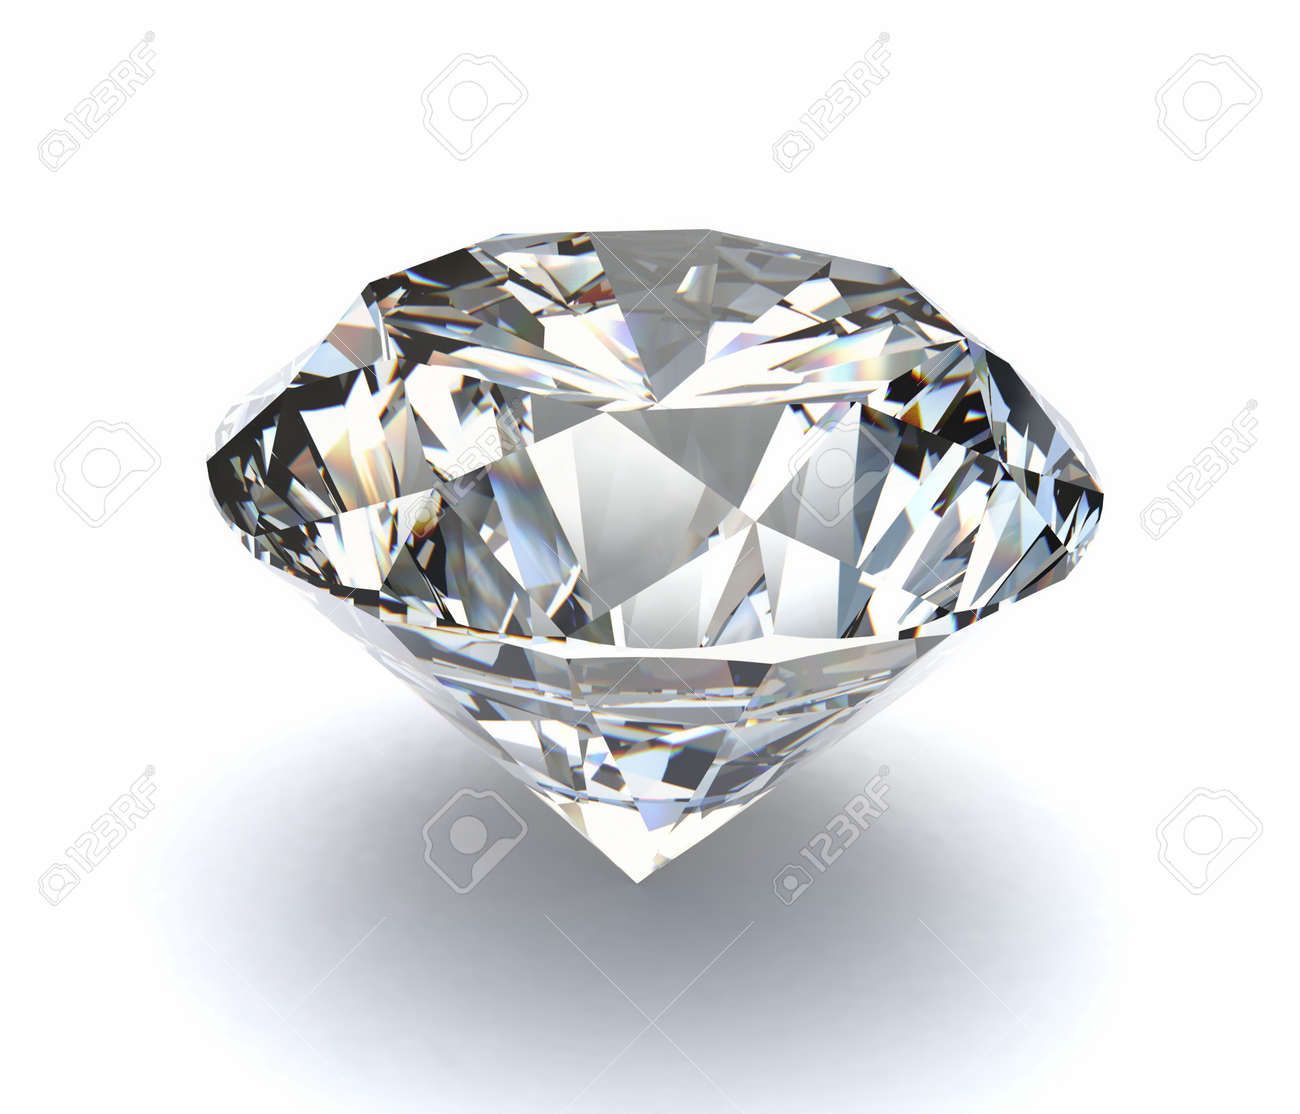 with on diamond stock image high background illustration quality white photo